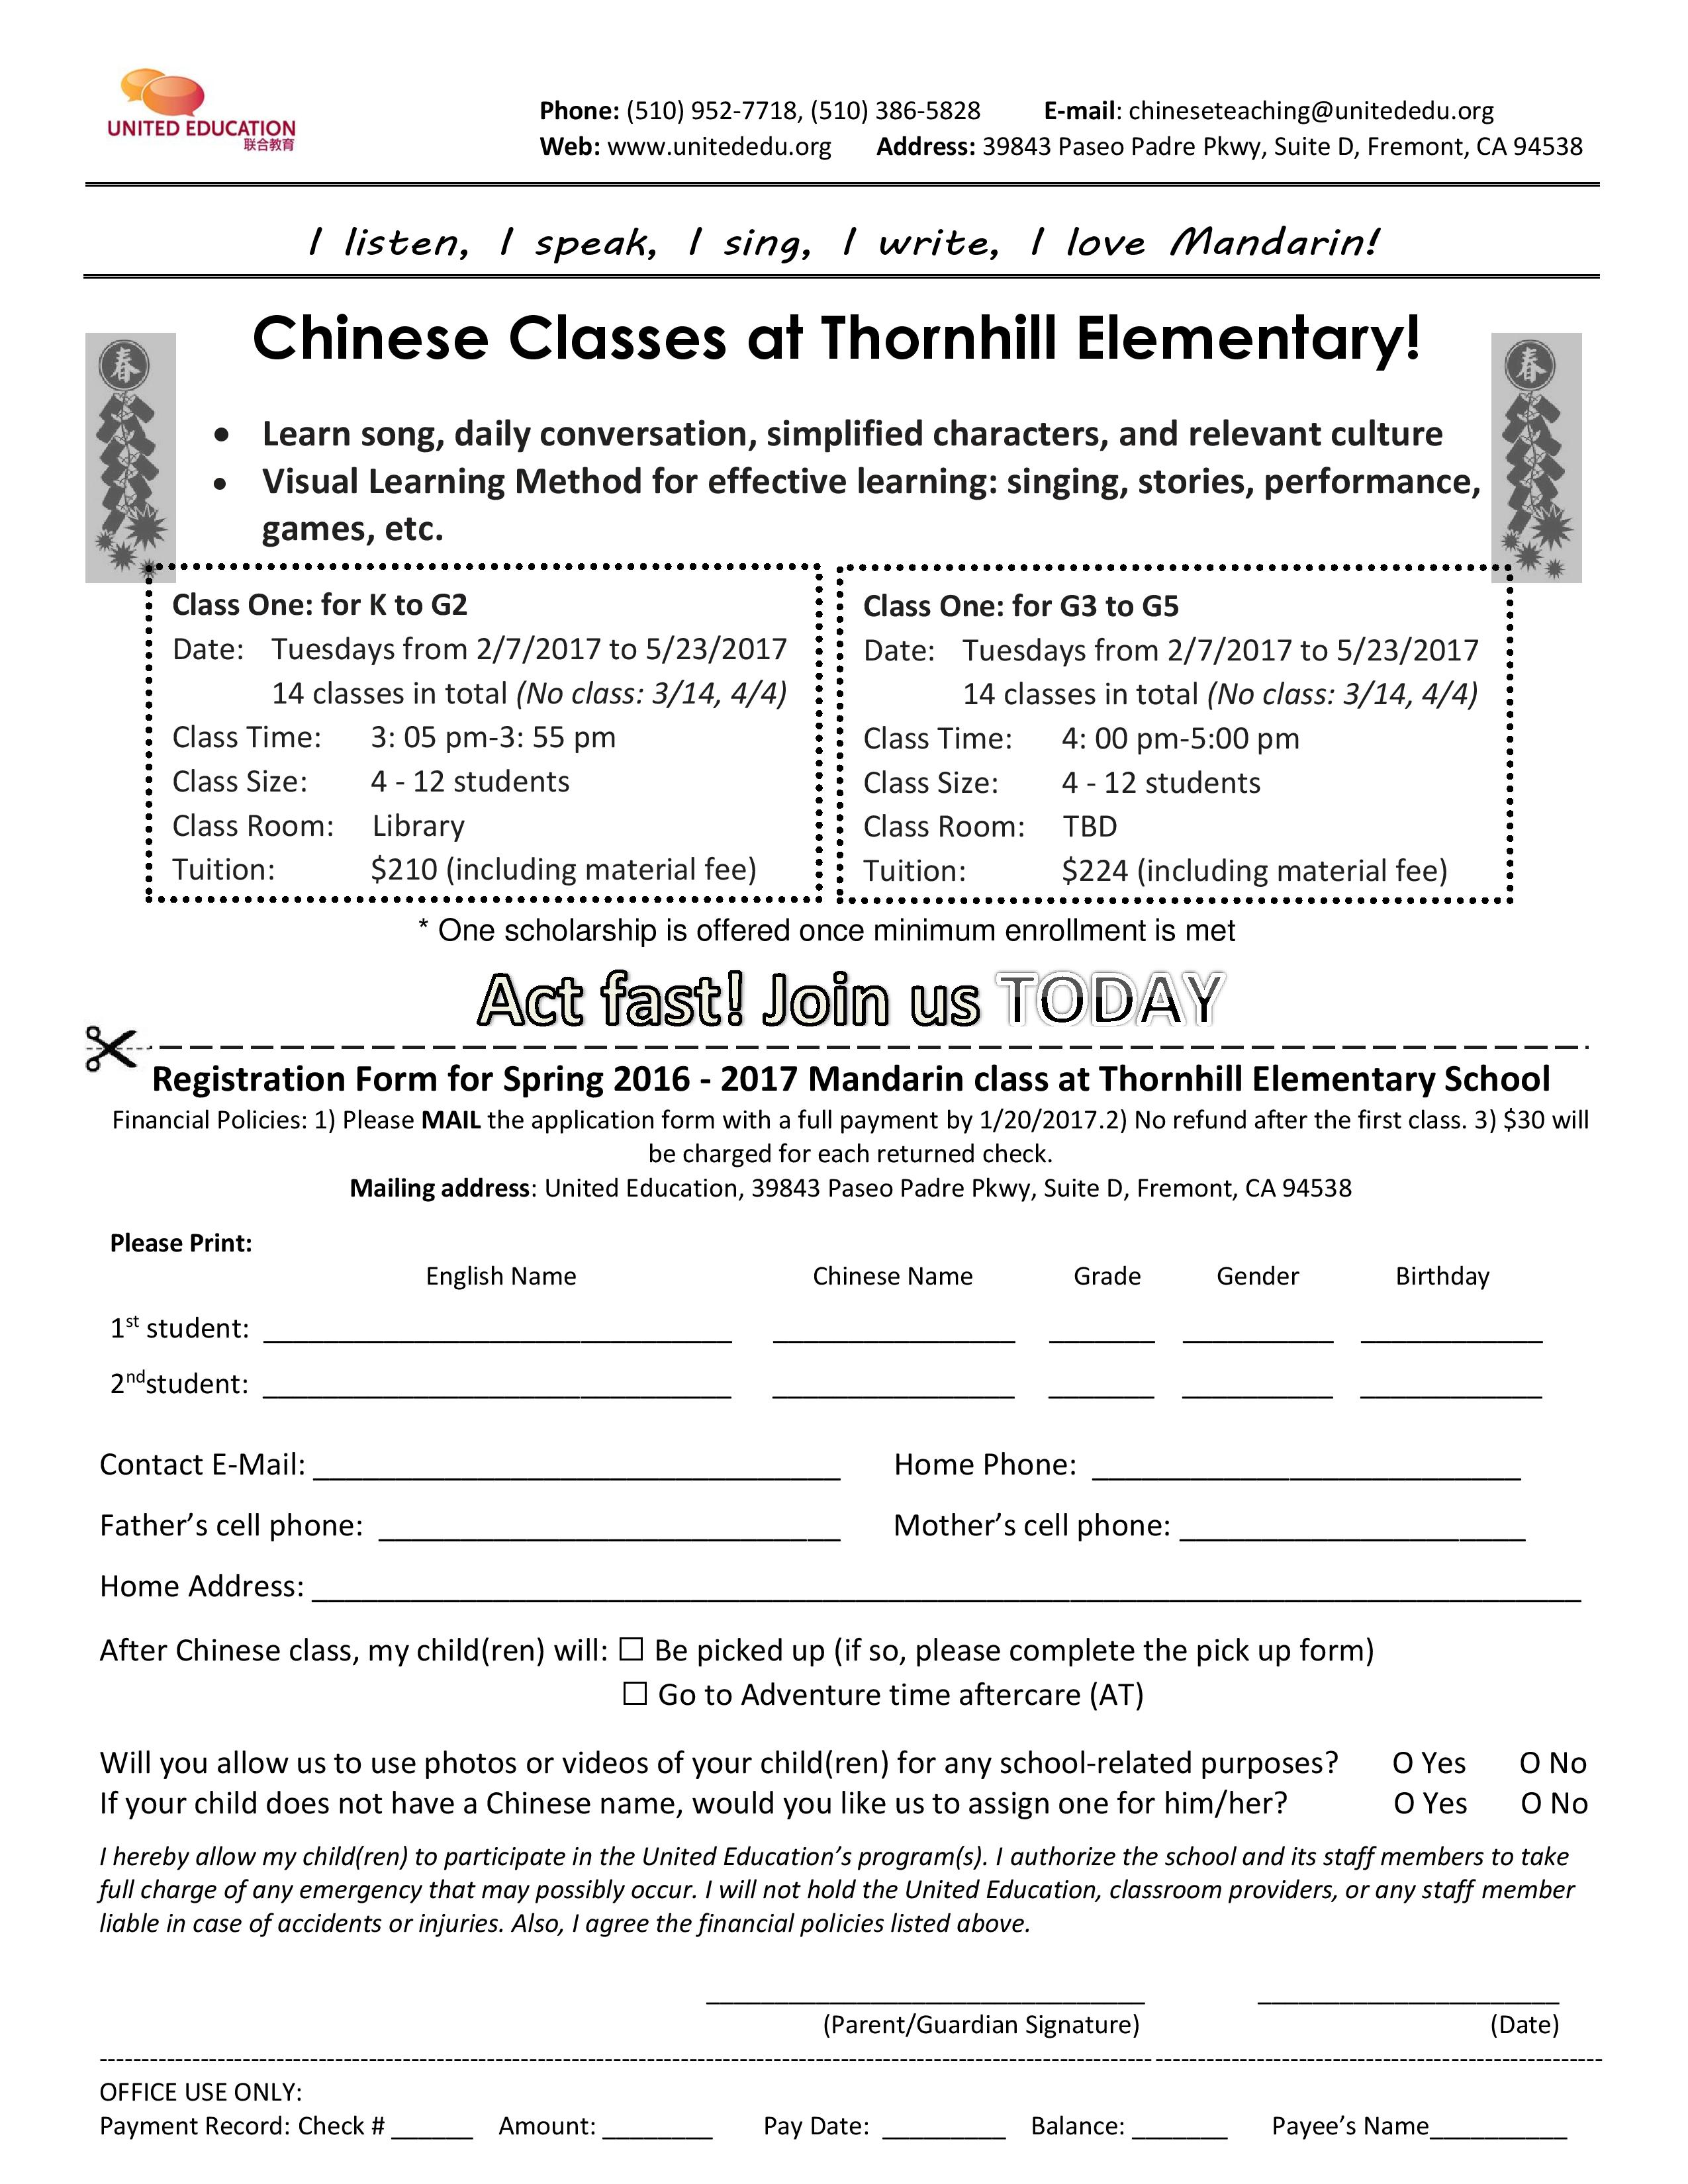 Thronhill elementary united education please fill the registration form and pick form mailing them with your payment check to 39843 paseo padre pkwy suite d fremont ca 94538 altavistaventures Gallery